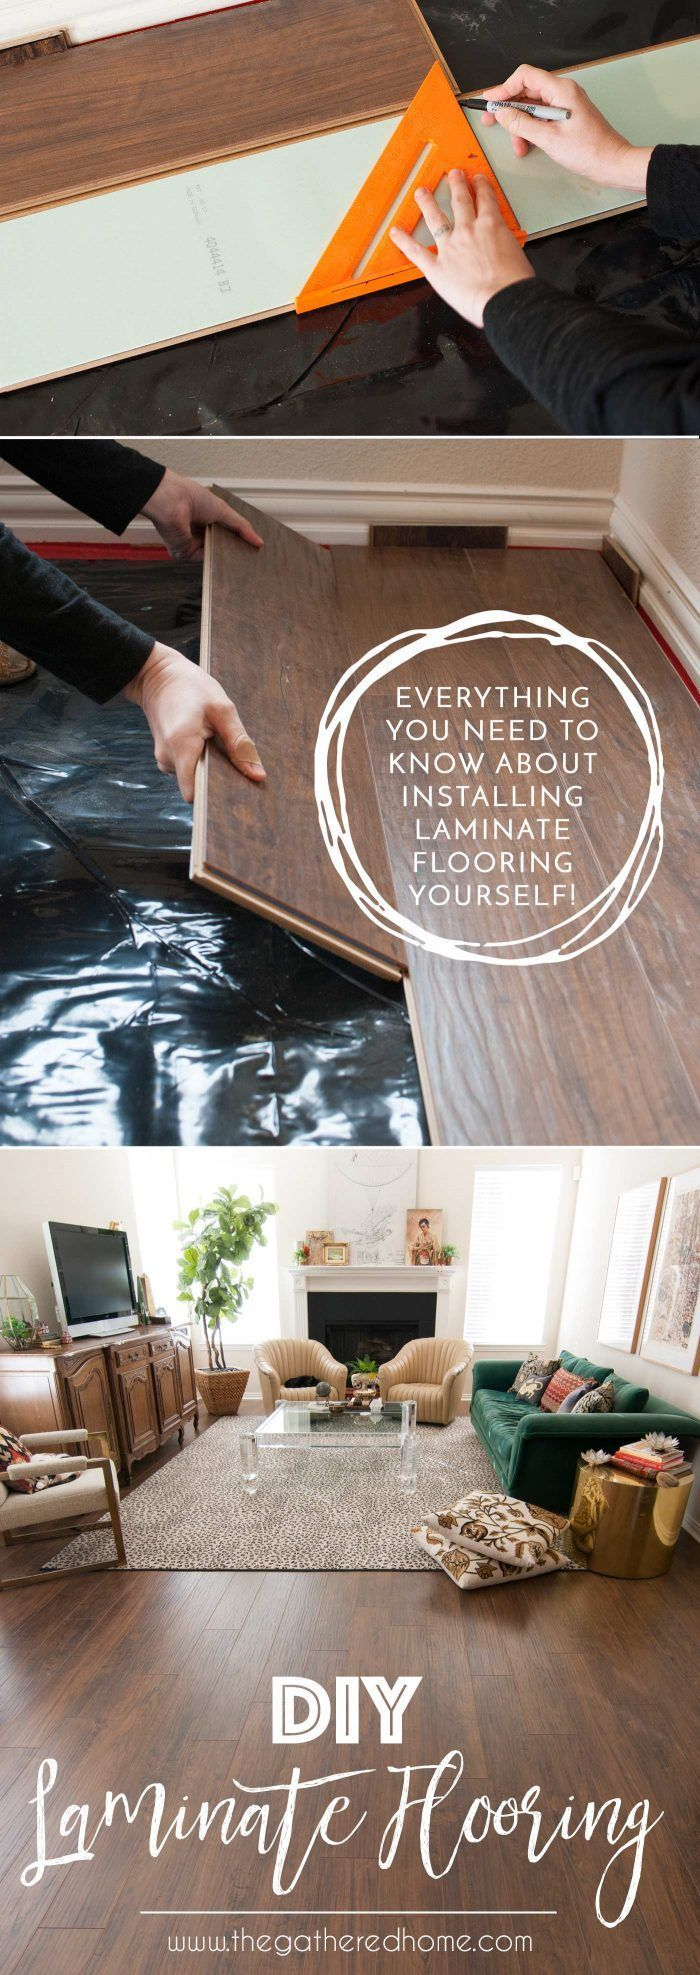 best flooring images on pinterest floors flooring ideas and